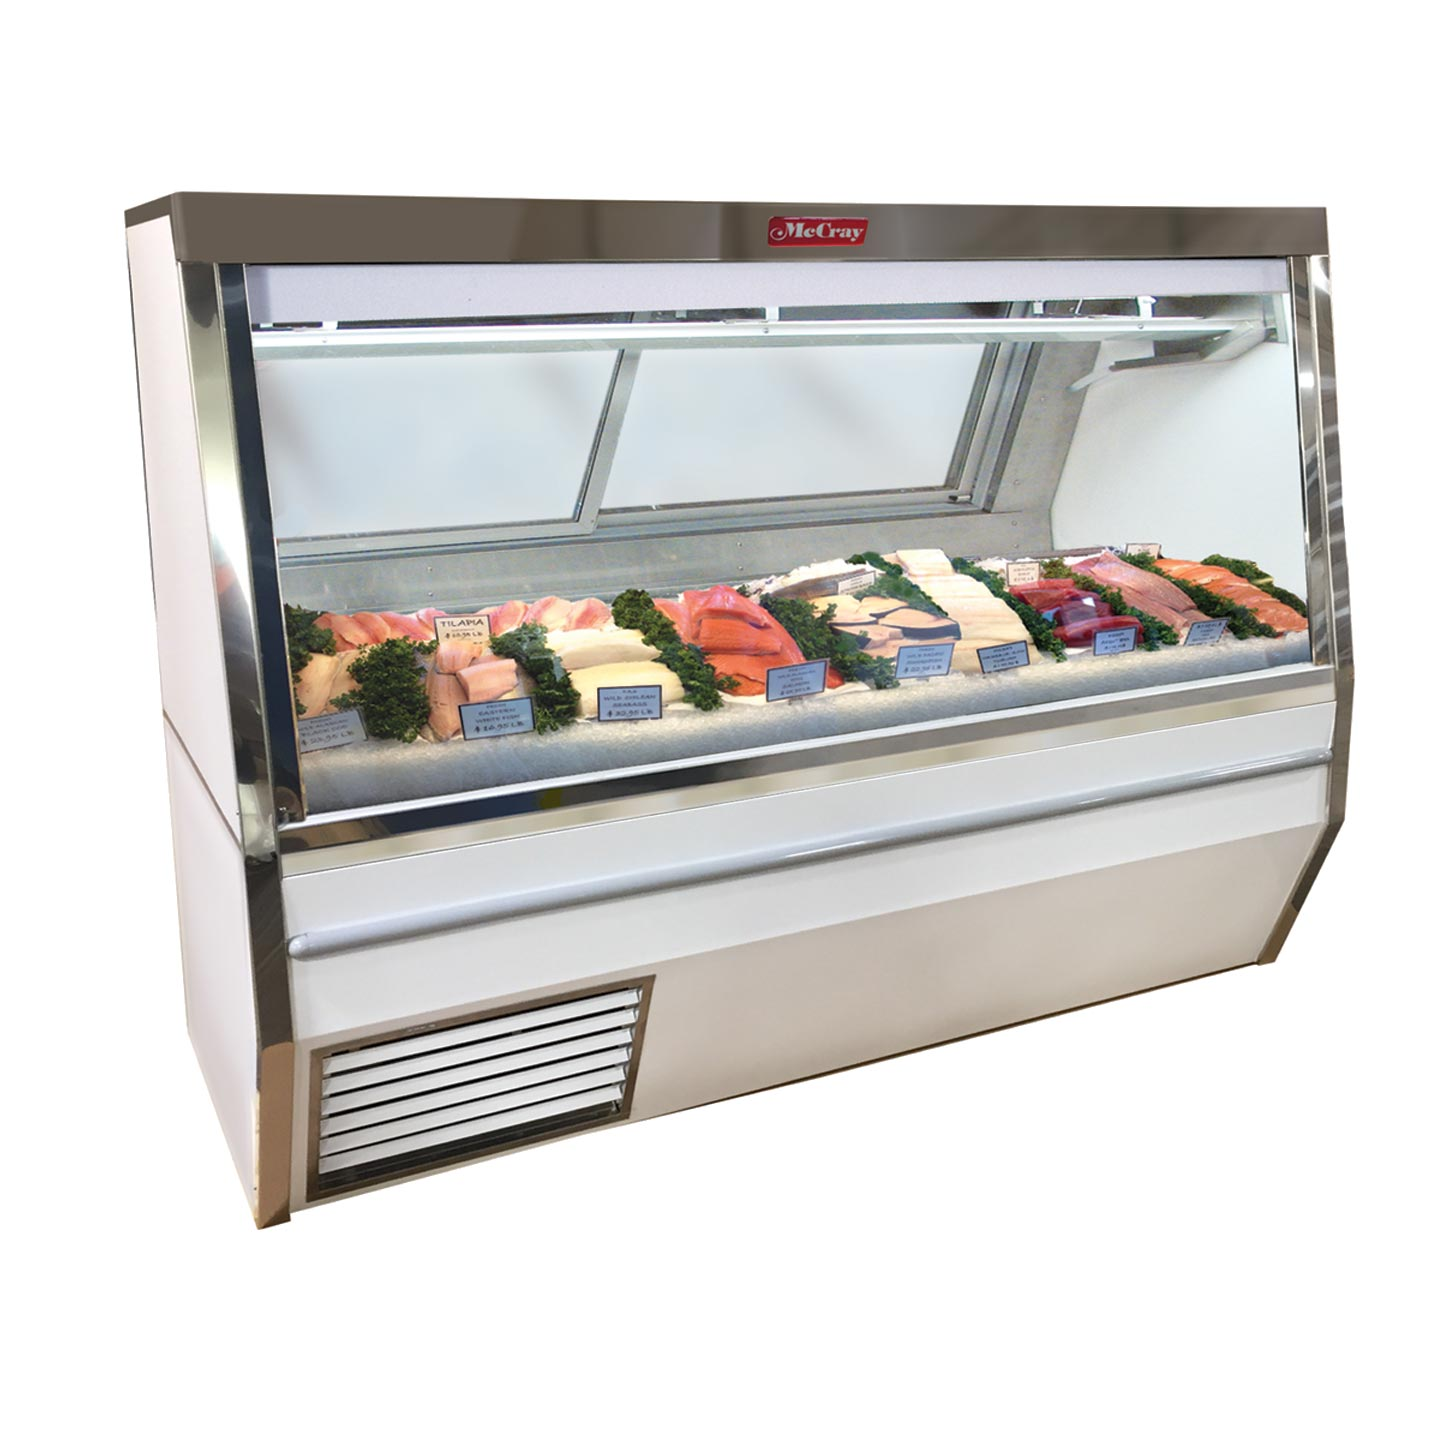 Howard-McCray R-CFS34N-8-LED display case, deli seafood / poultry